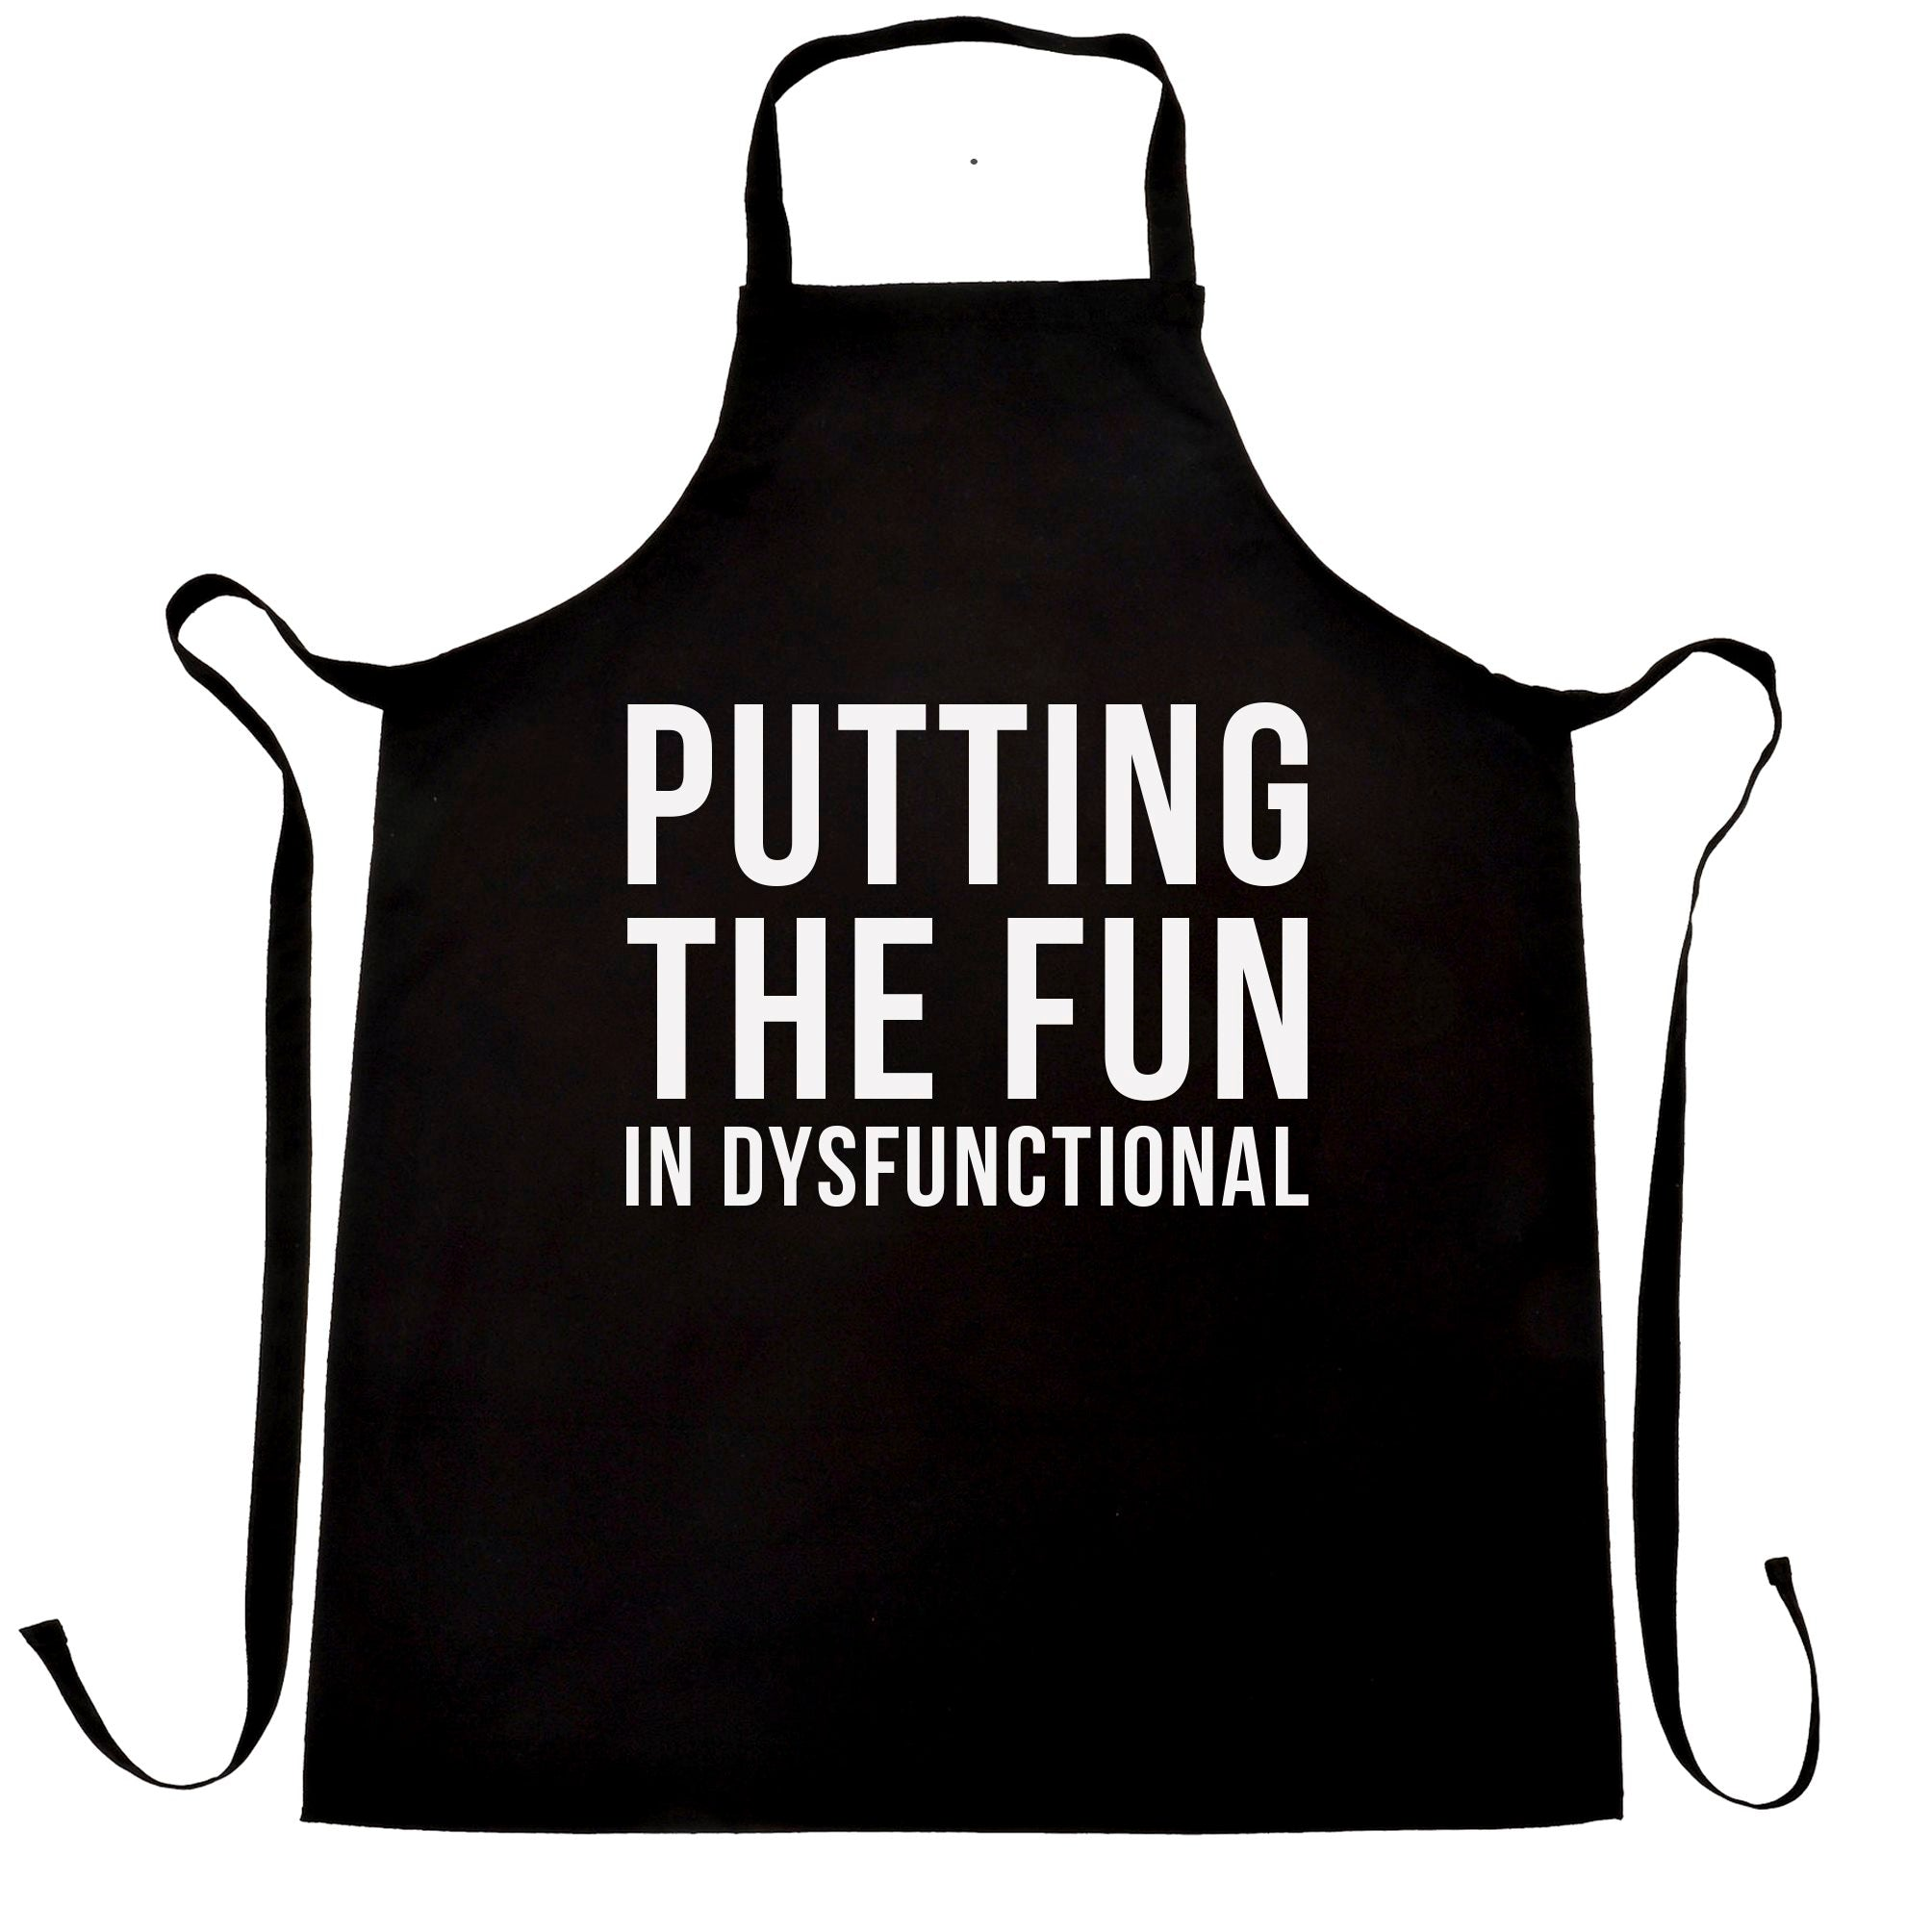 Novelty Chef's Apron Putting The Fun In Dysfunctional